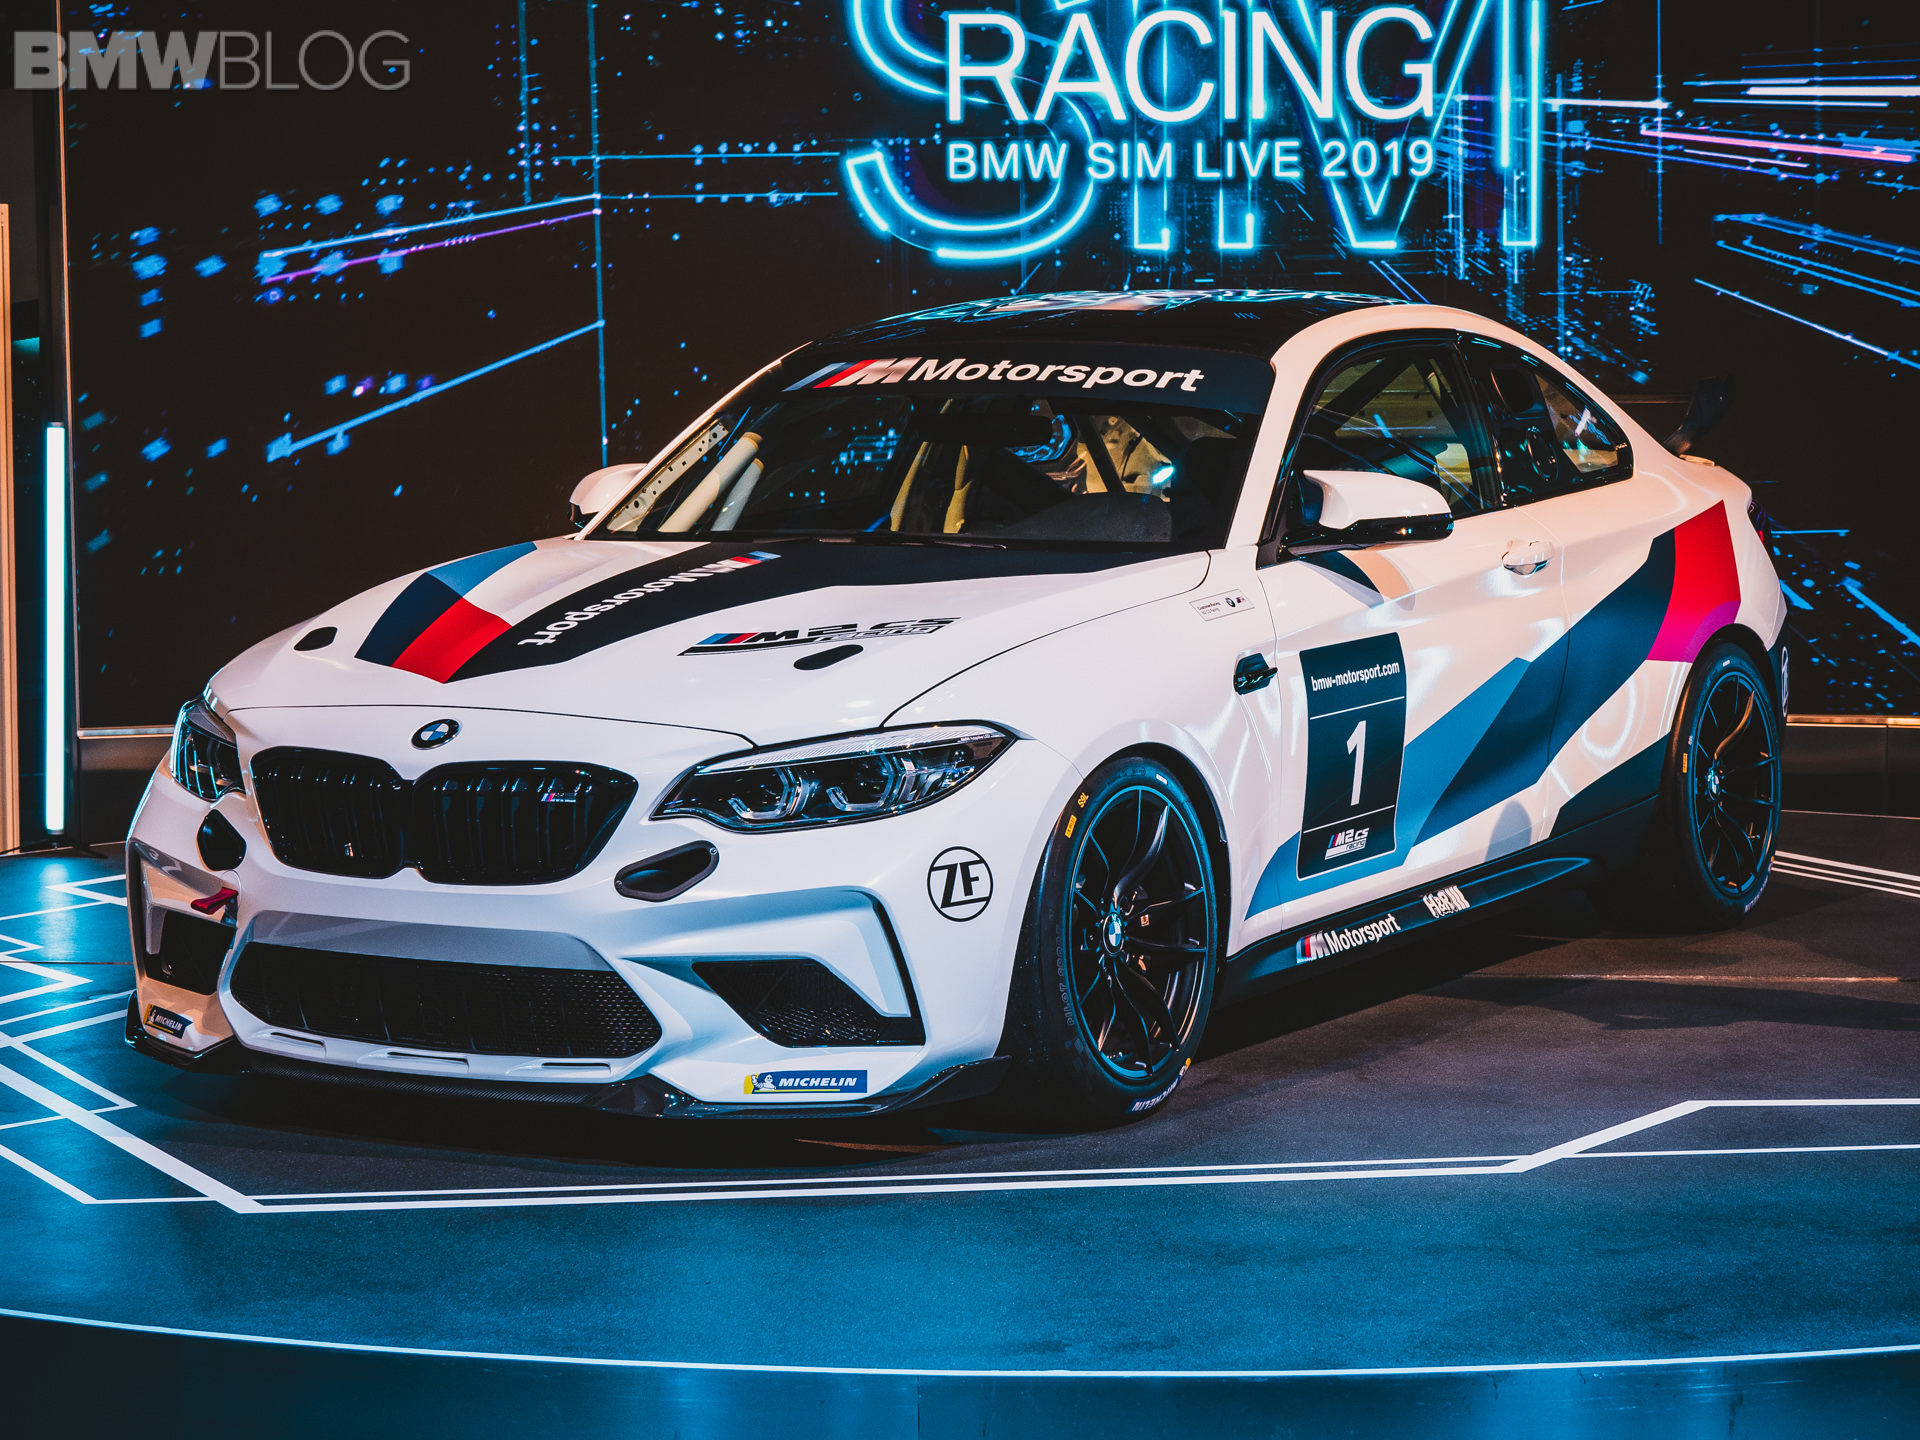 Bmw M2 Cs Racing Exclusive First Look At Latest Racing Car